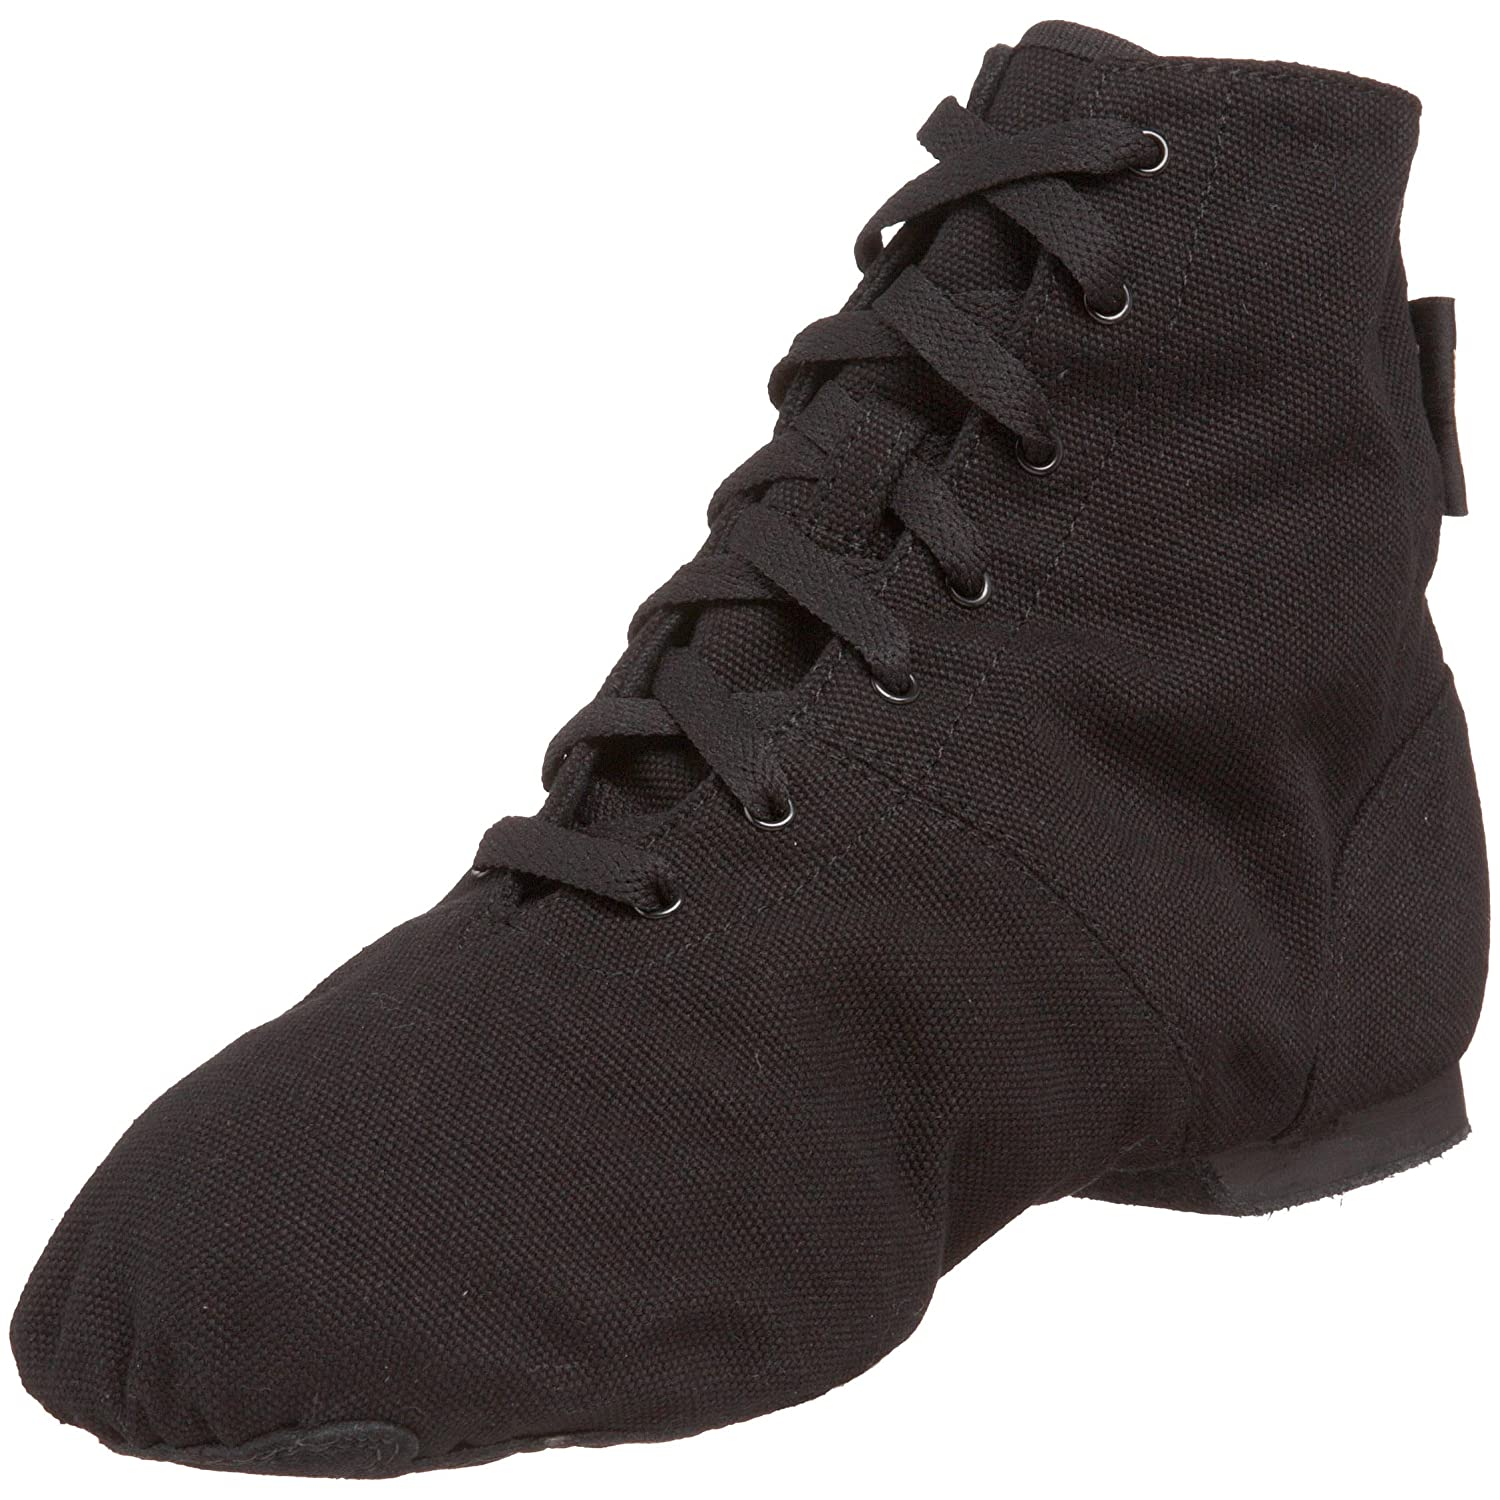 Retro Style Dance Shoes Sansha Soho Lace-Up Jazz Shoe $36.55 AT vintagedancer.com